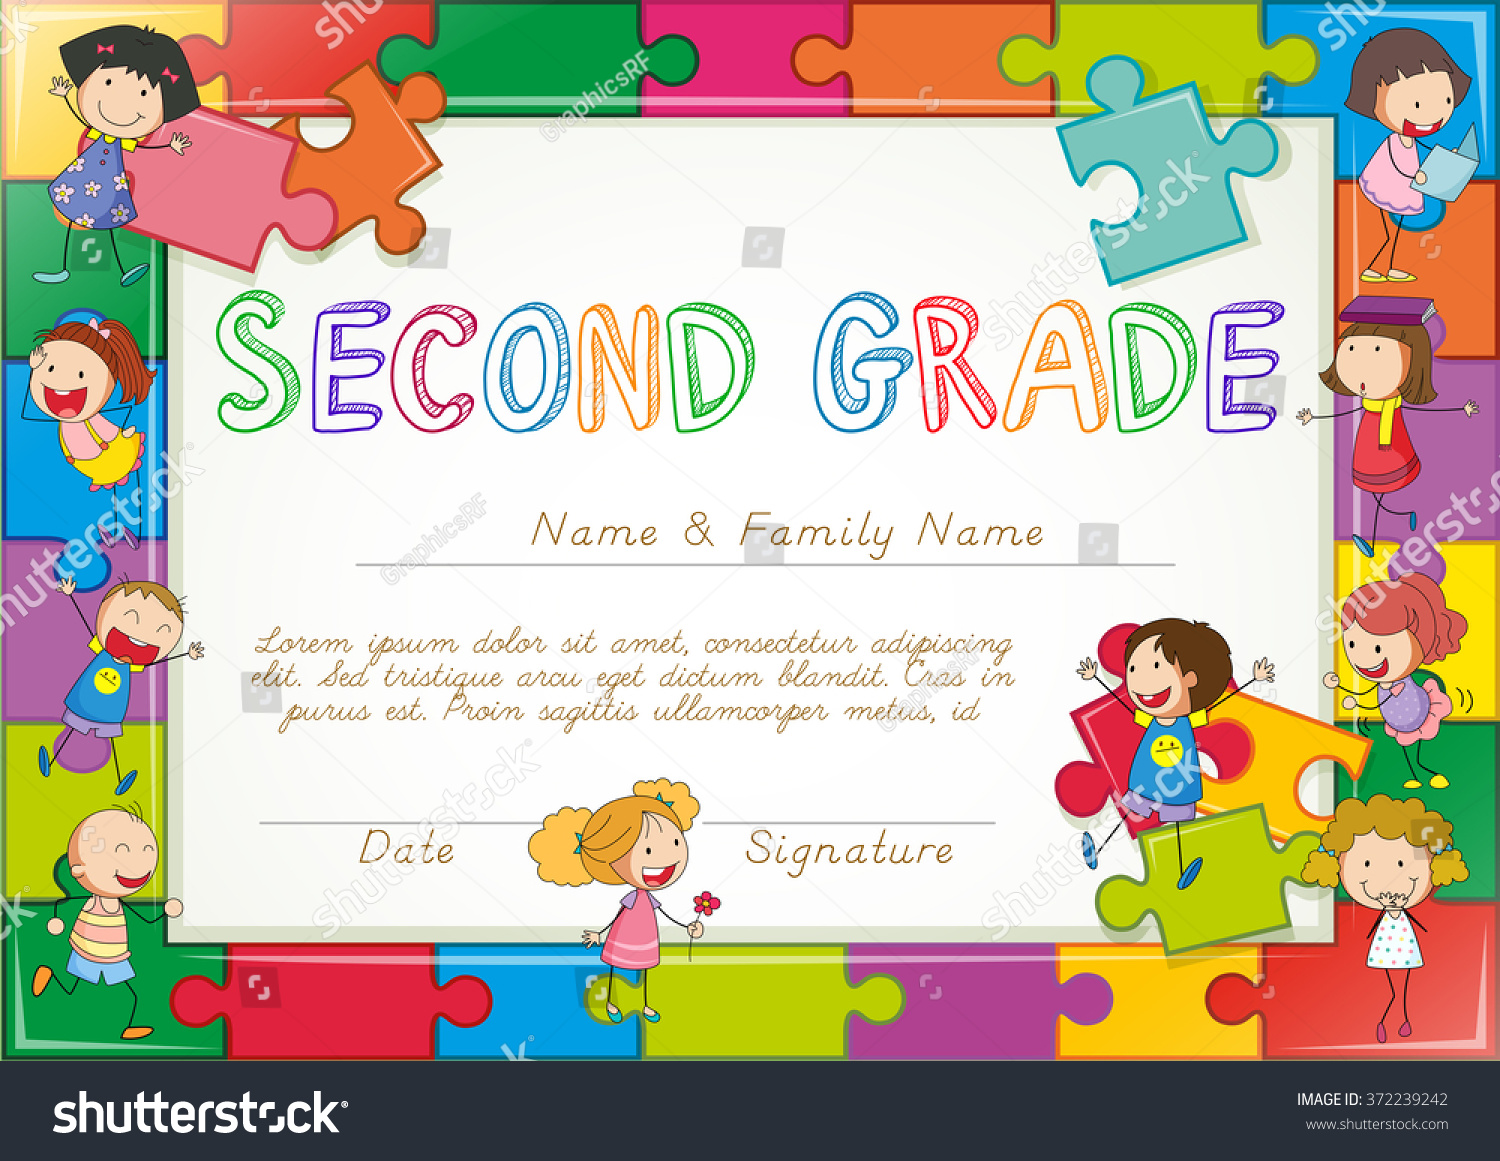 Royalty Free Certificate Template For Second Grade 372239242 Stock